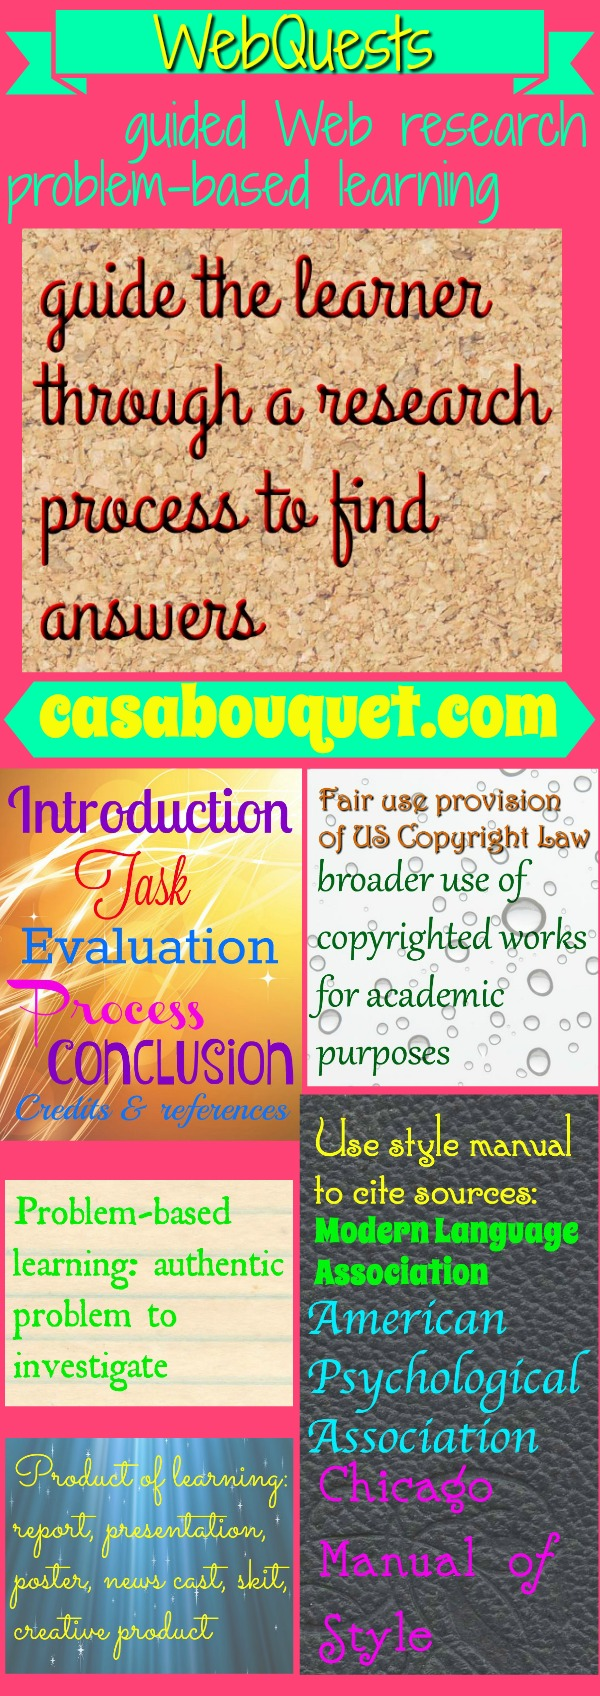 WebQuests guide students through the process of research and answering questions on a specific topic. Combine with PBL: students take on roles of stakeholders, present evidence and solutions from their role viewpoint.